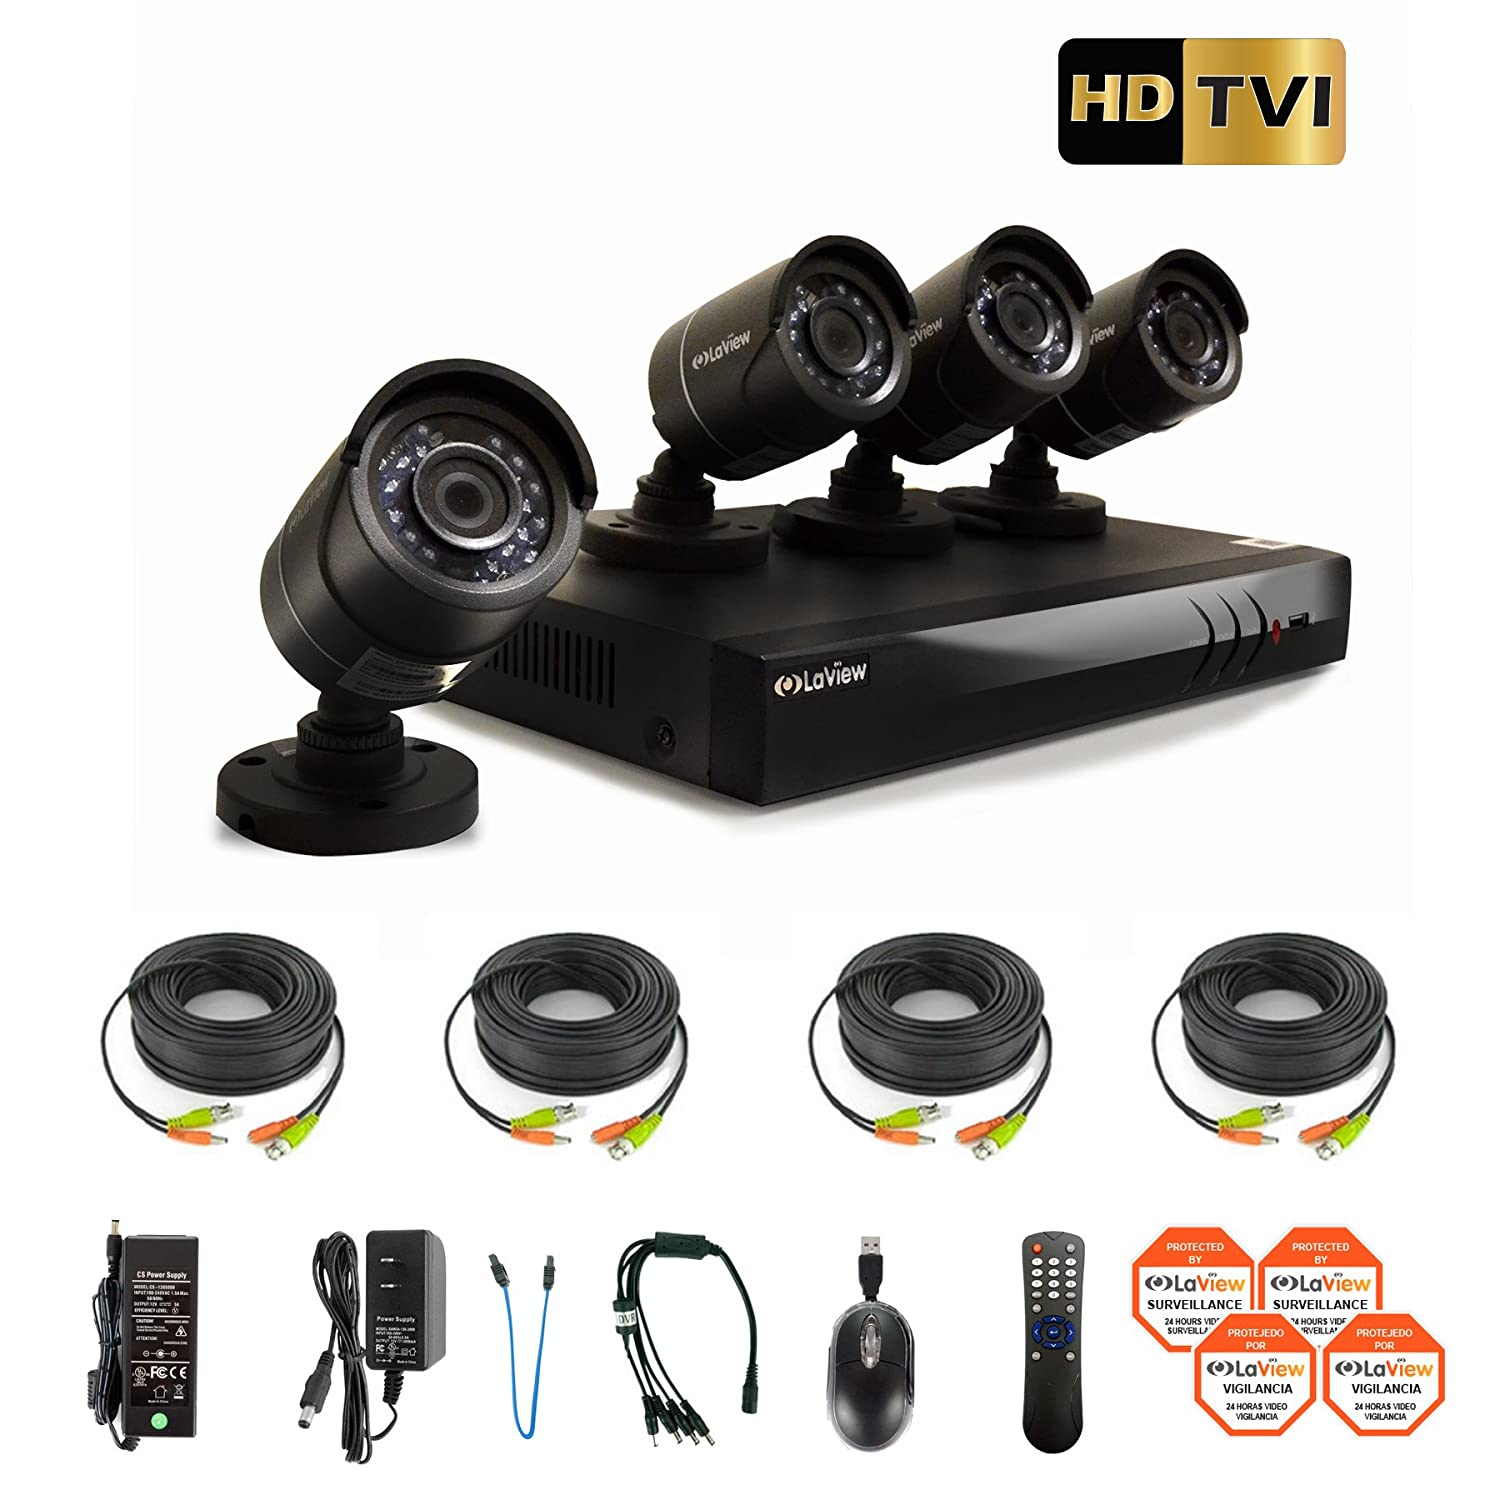 ... HD DVR Surveillance System with 1TB HDD and 4 HD 720P Night Vision Outdoor Bullet Security Cameras, Remote View Ready, LV-KH944FT4A8-T1 : Camera & Photo